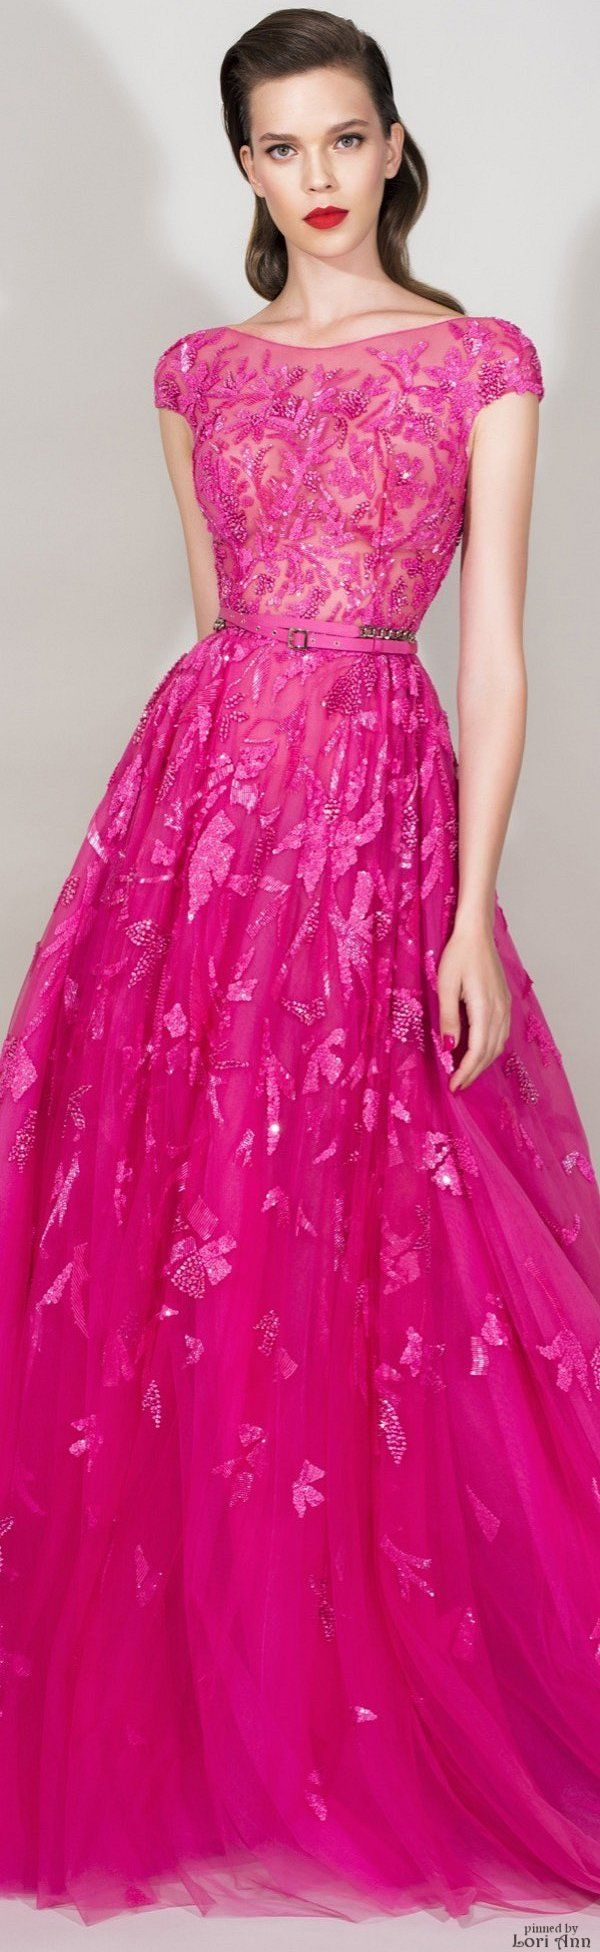 Zuhair Murad Resort 2016 I love P I N K this dress is stunning, bringing a very 1950's vibe with a modern silhouette.